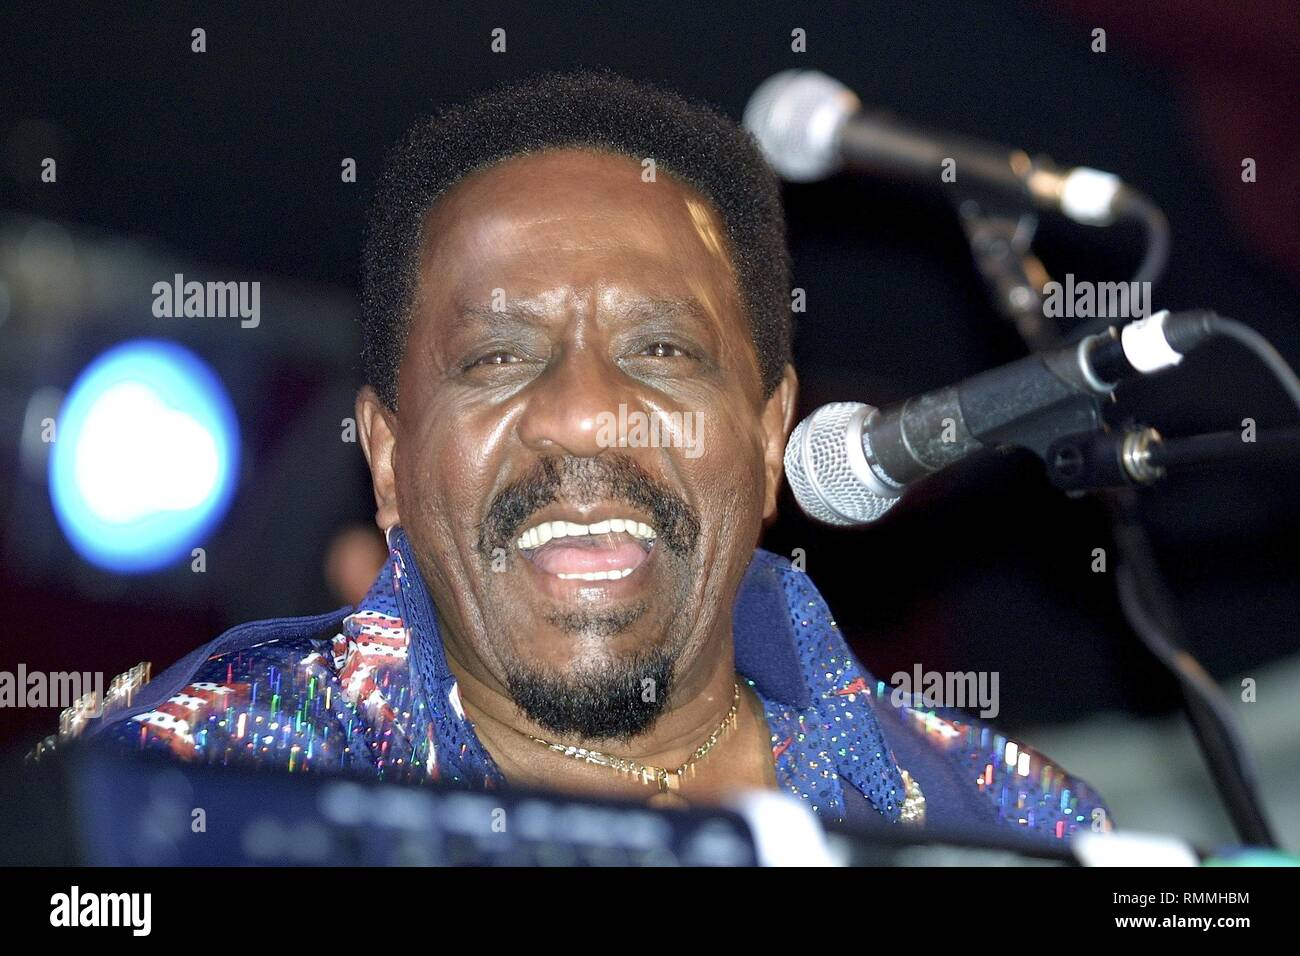 """Musician, bandleader, talent scout, and record producer Ike Turner is shown performing on stage during a """"live"""" concert appearance. Stock Photo"""